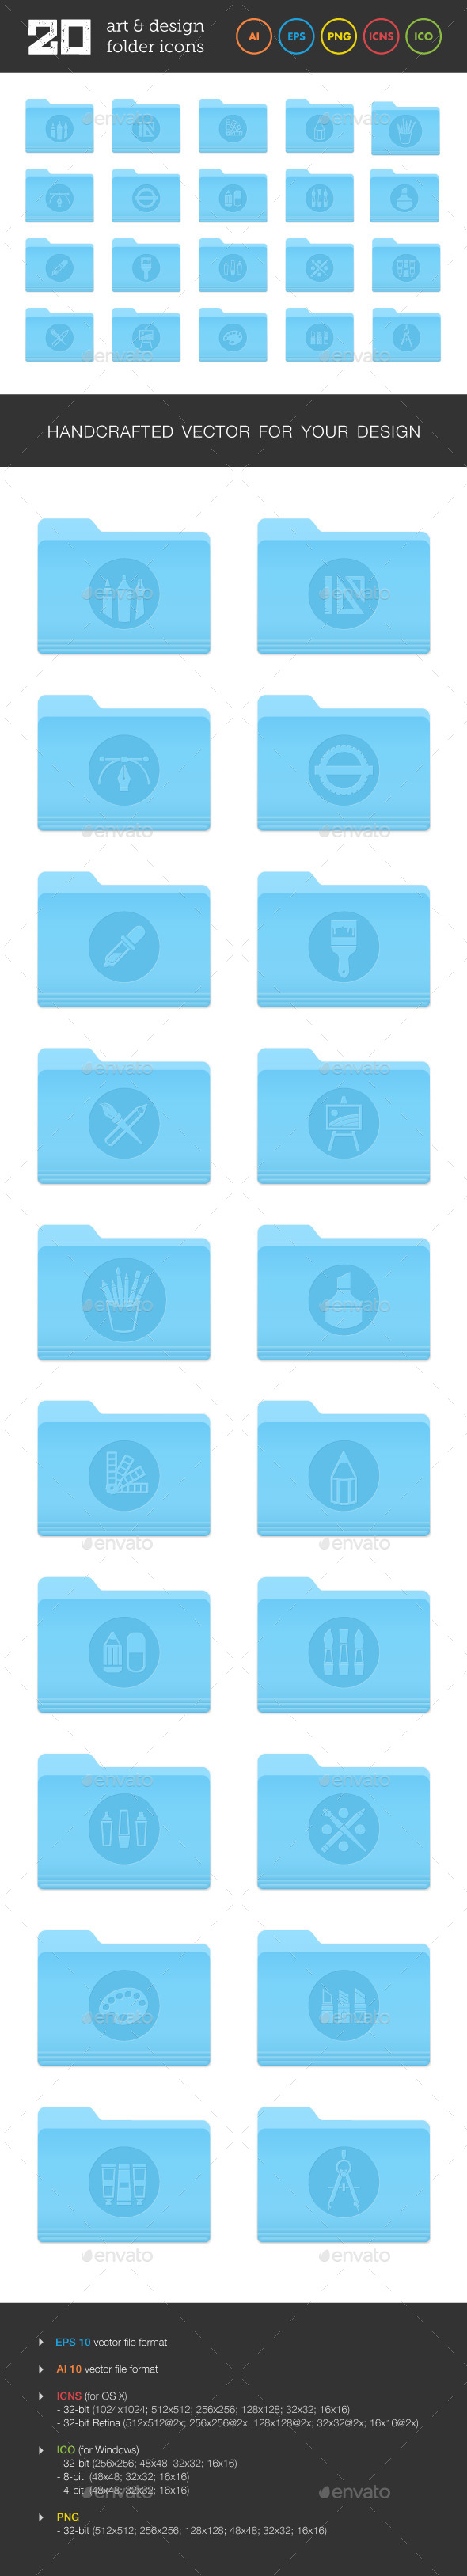 Art and Design Folder Icons Set 2 - Software Icons